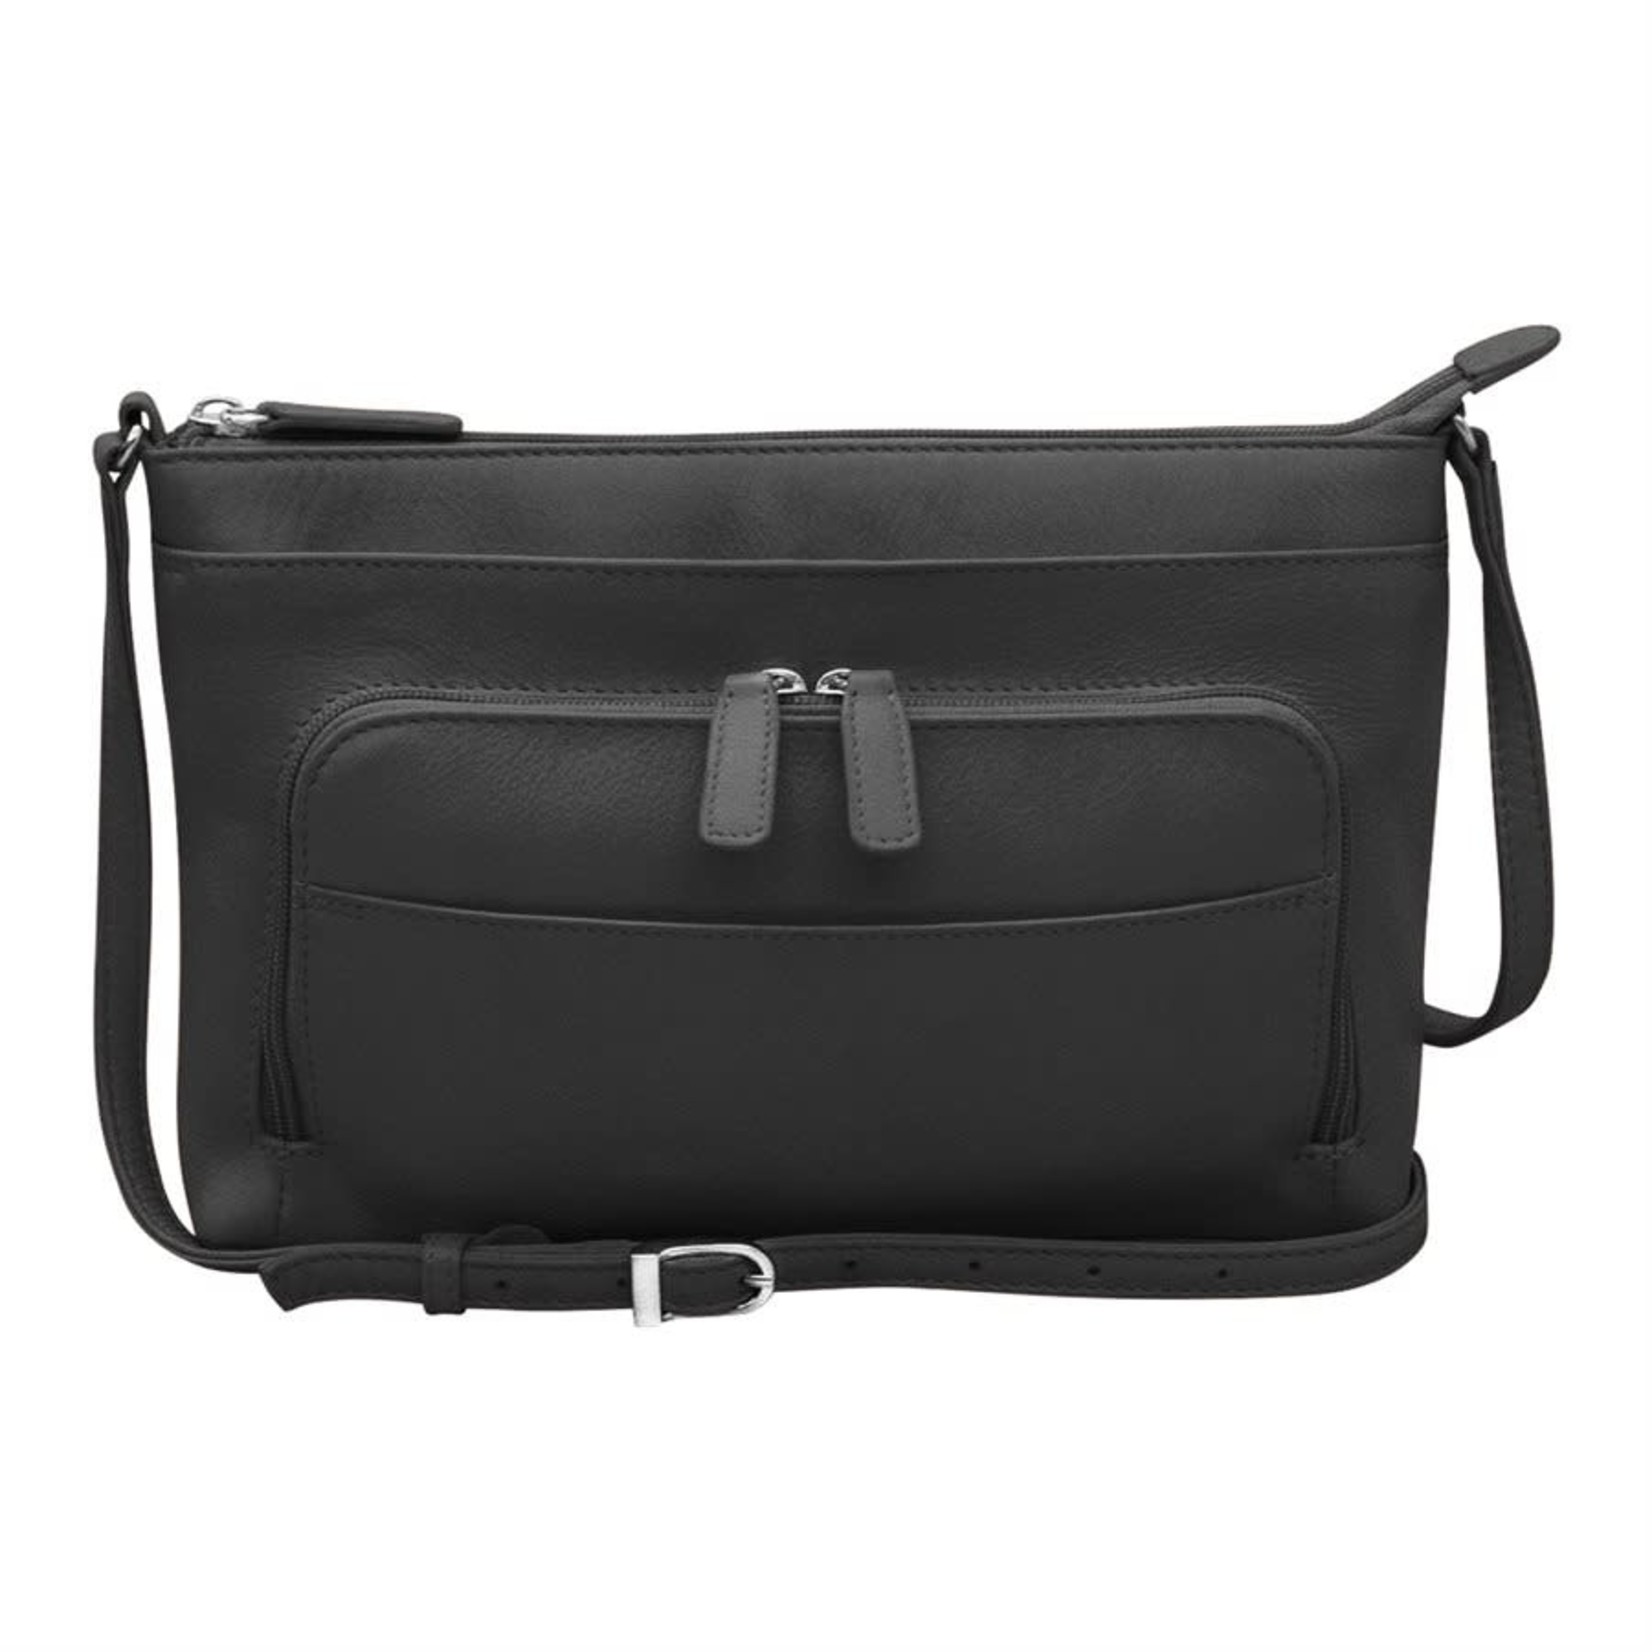 Leather Handbags and Accessories 6923 Black - The Traveler Crossbody